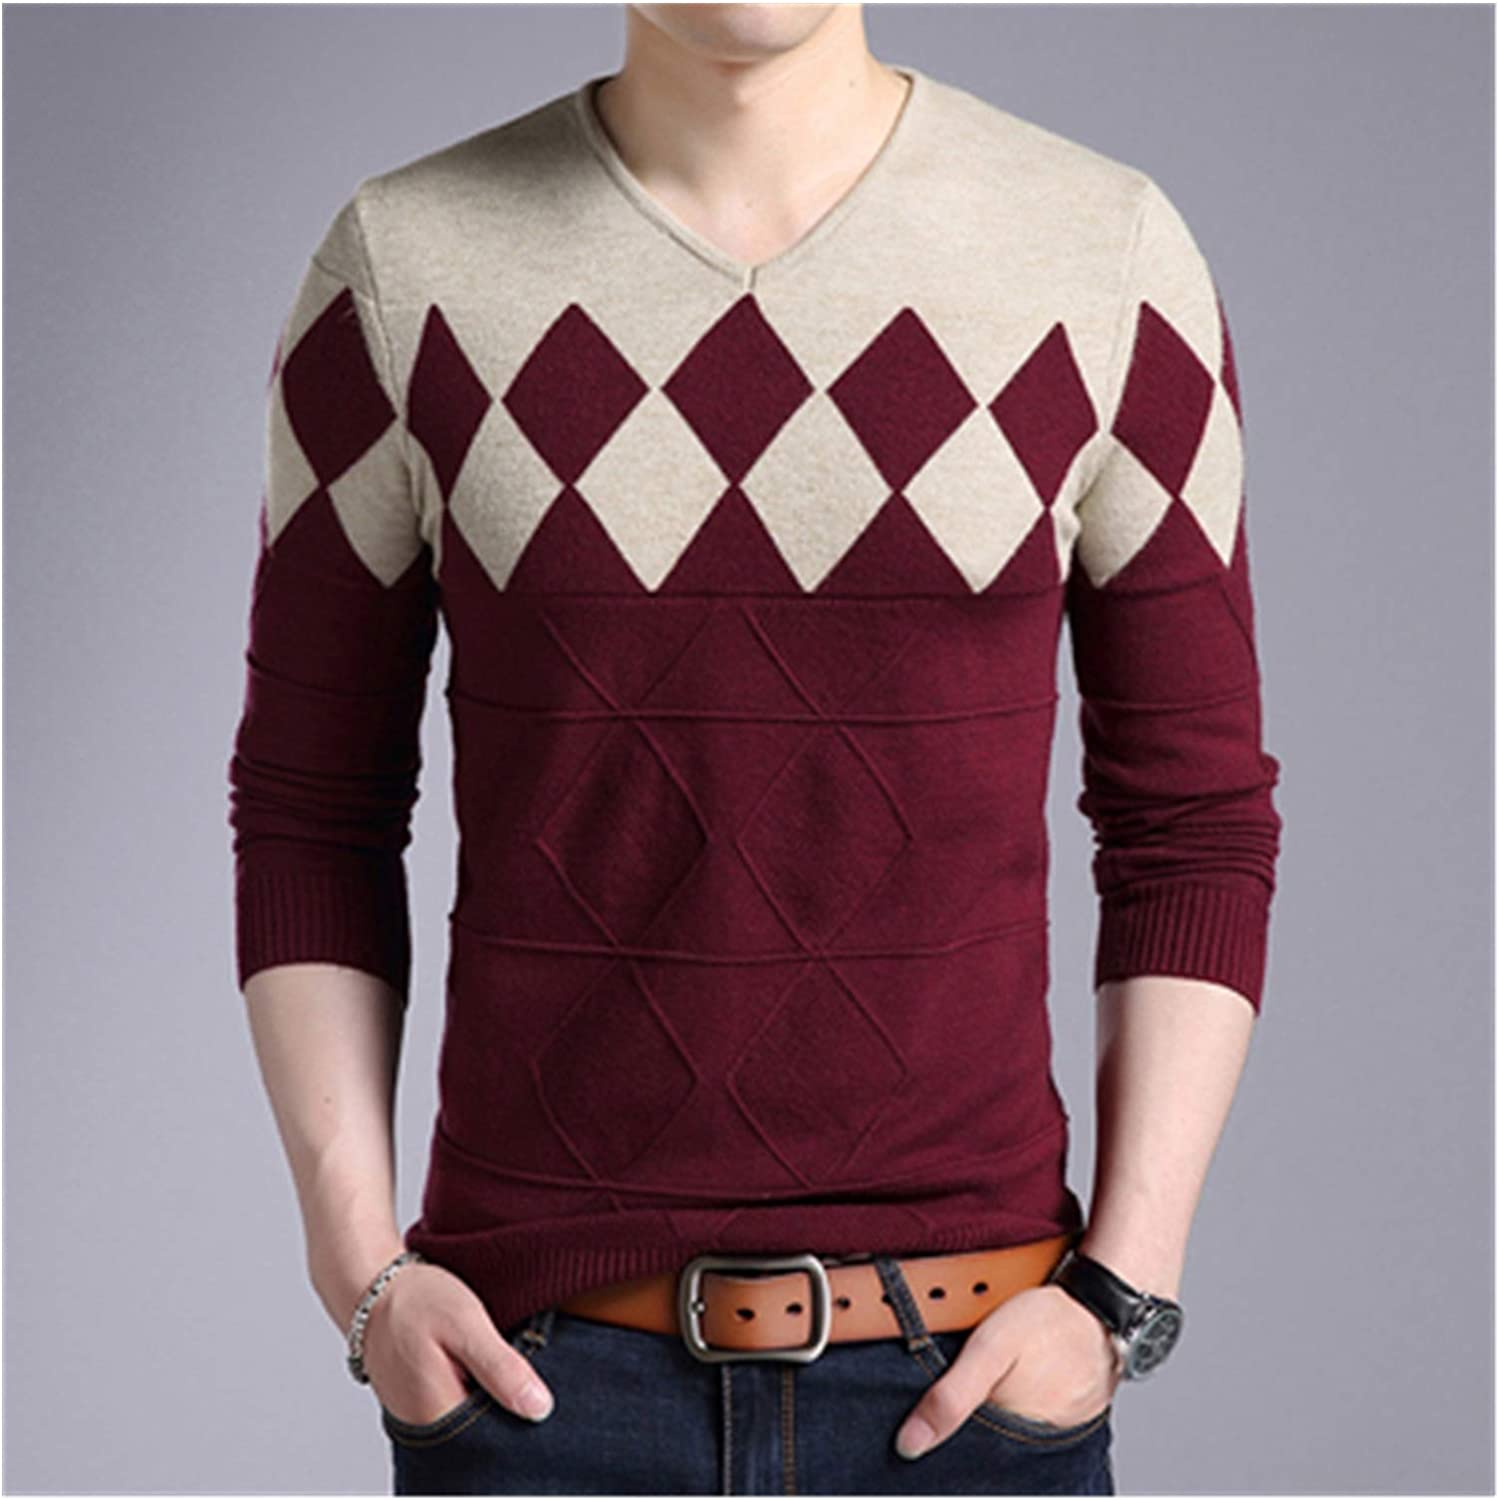 LYYQH Autumn Winter Mens Pullover Sweater Men Turtleneck Casual V-Neck Sweater Men's Slim Fit Knitted Pullovers Clothing 3XL (Color : Red, Size : Large)